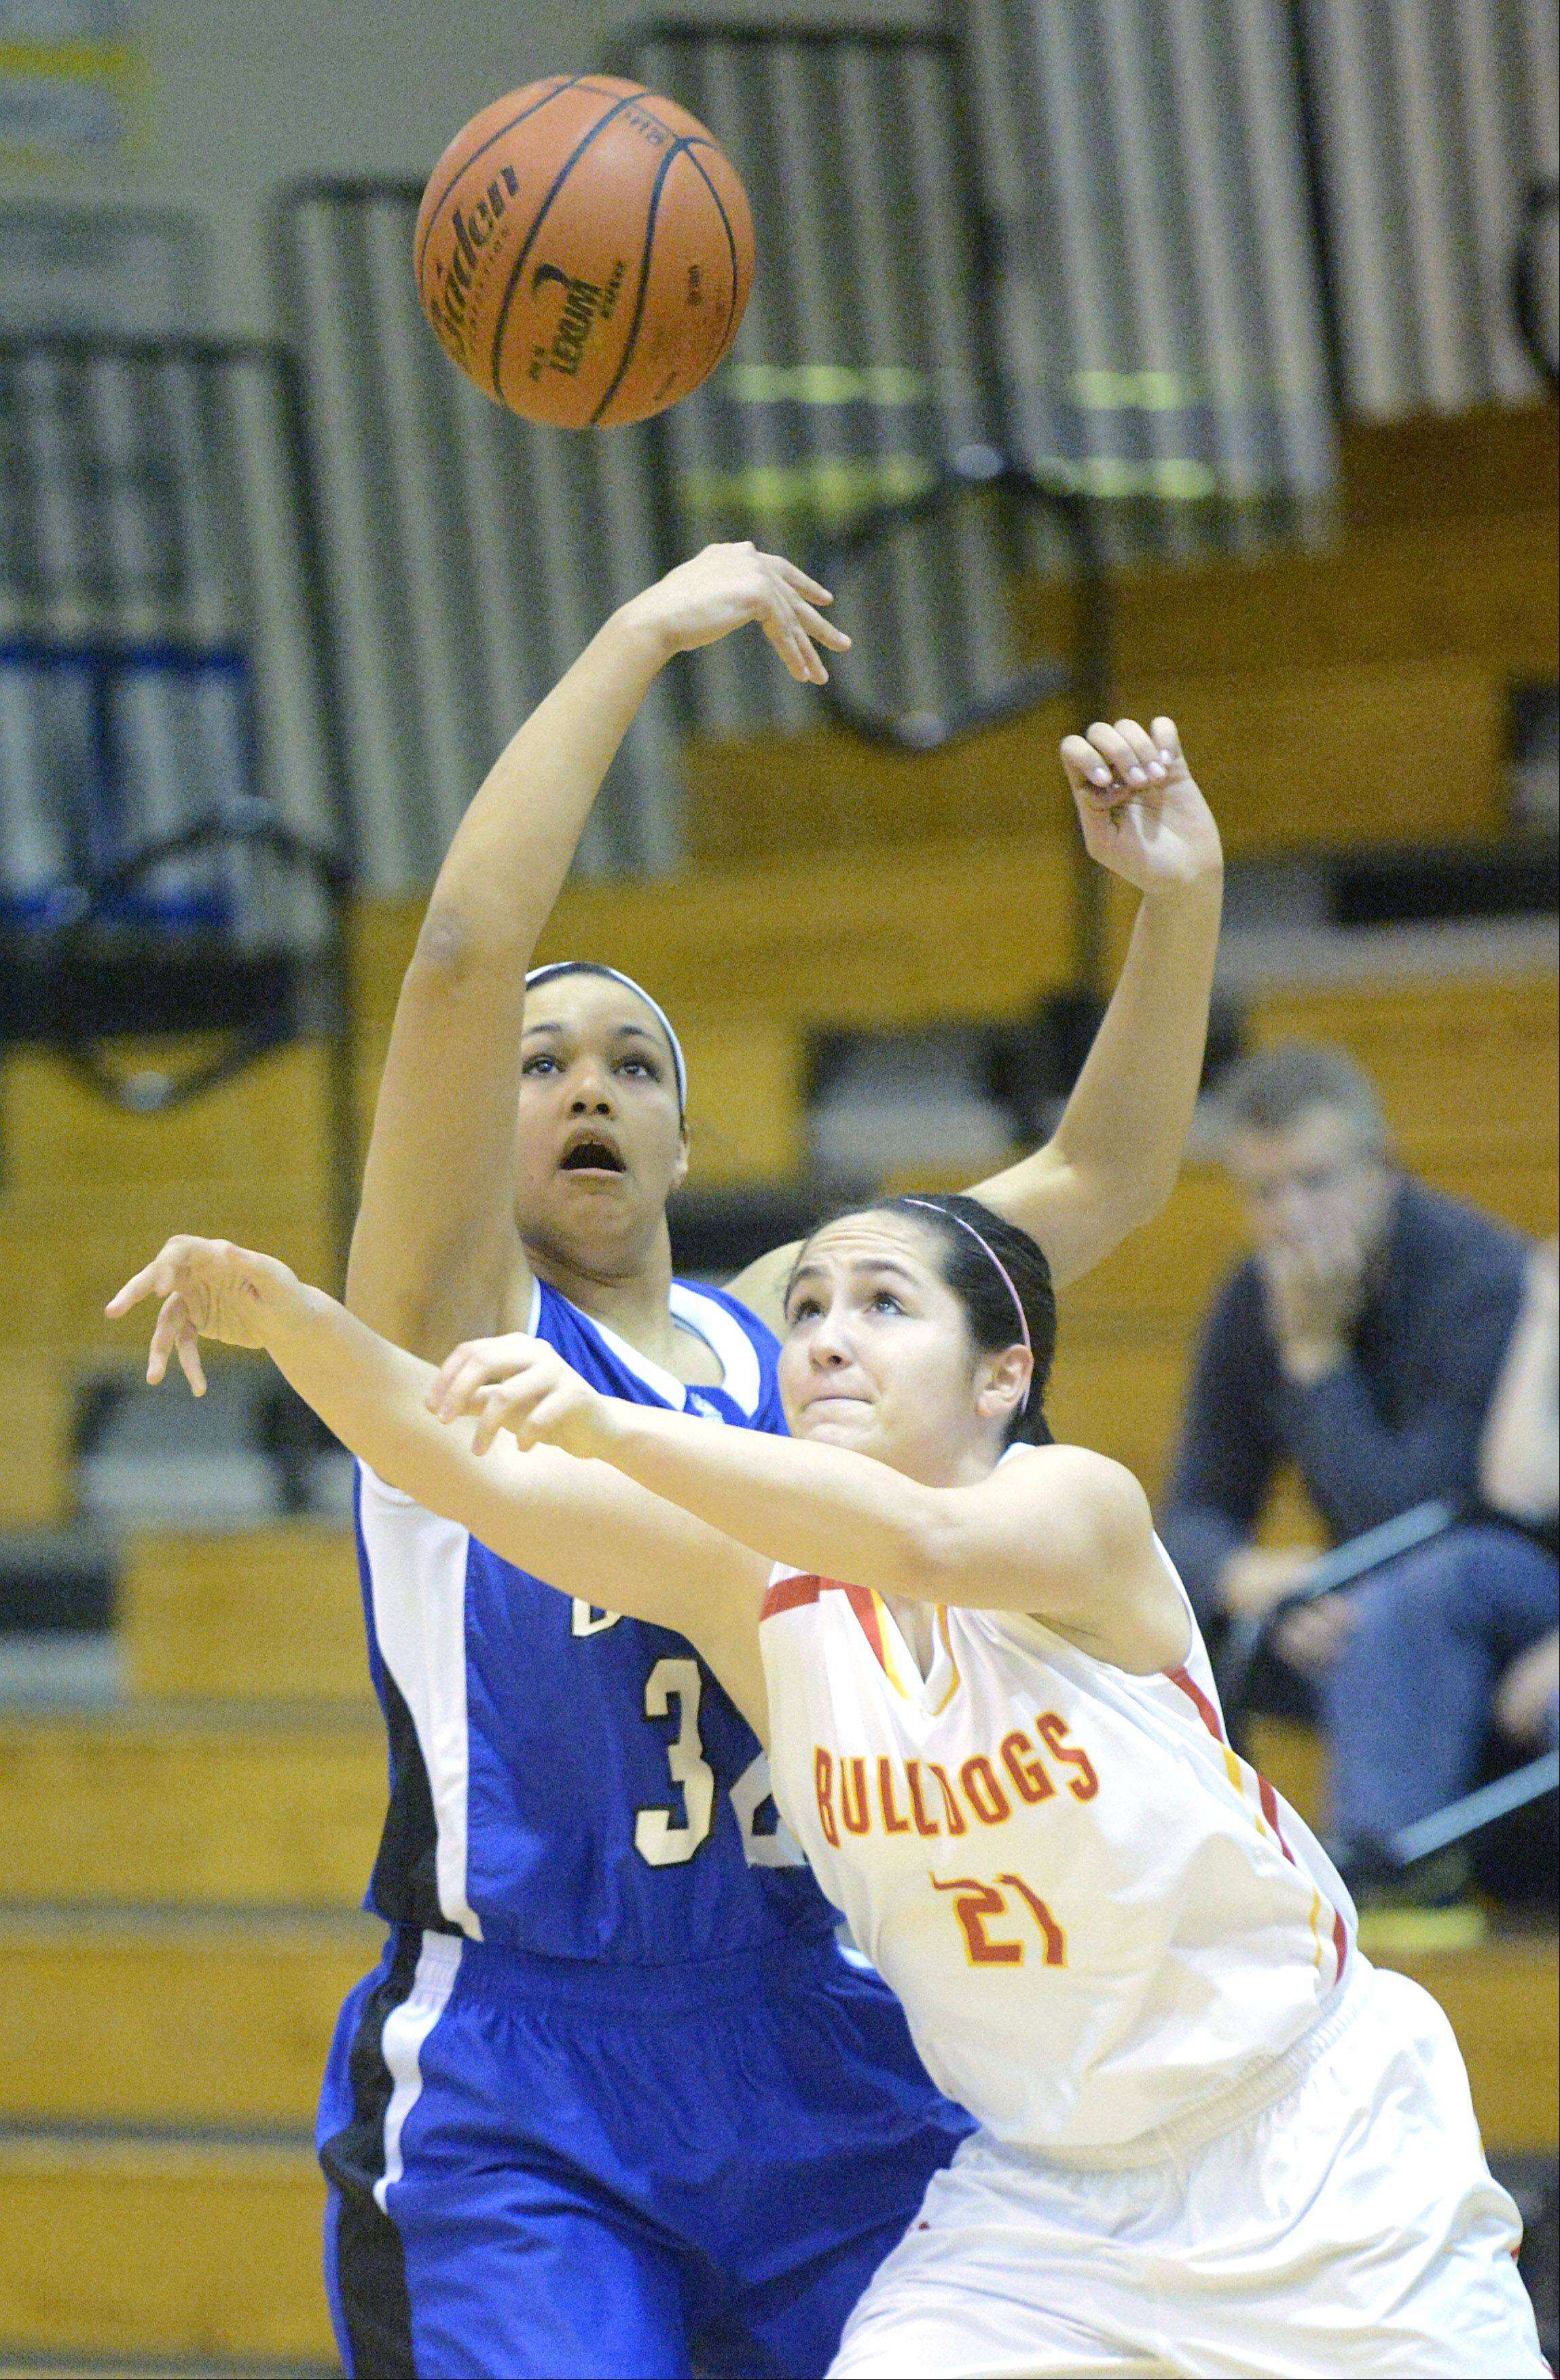 Geneva's Sidney Santos knocks the ball away from Batavia's Sami Villarreal during Friday's game.